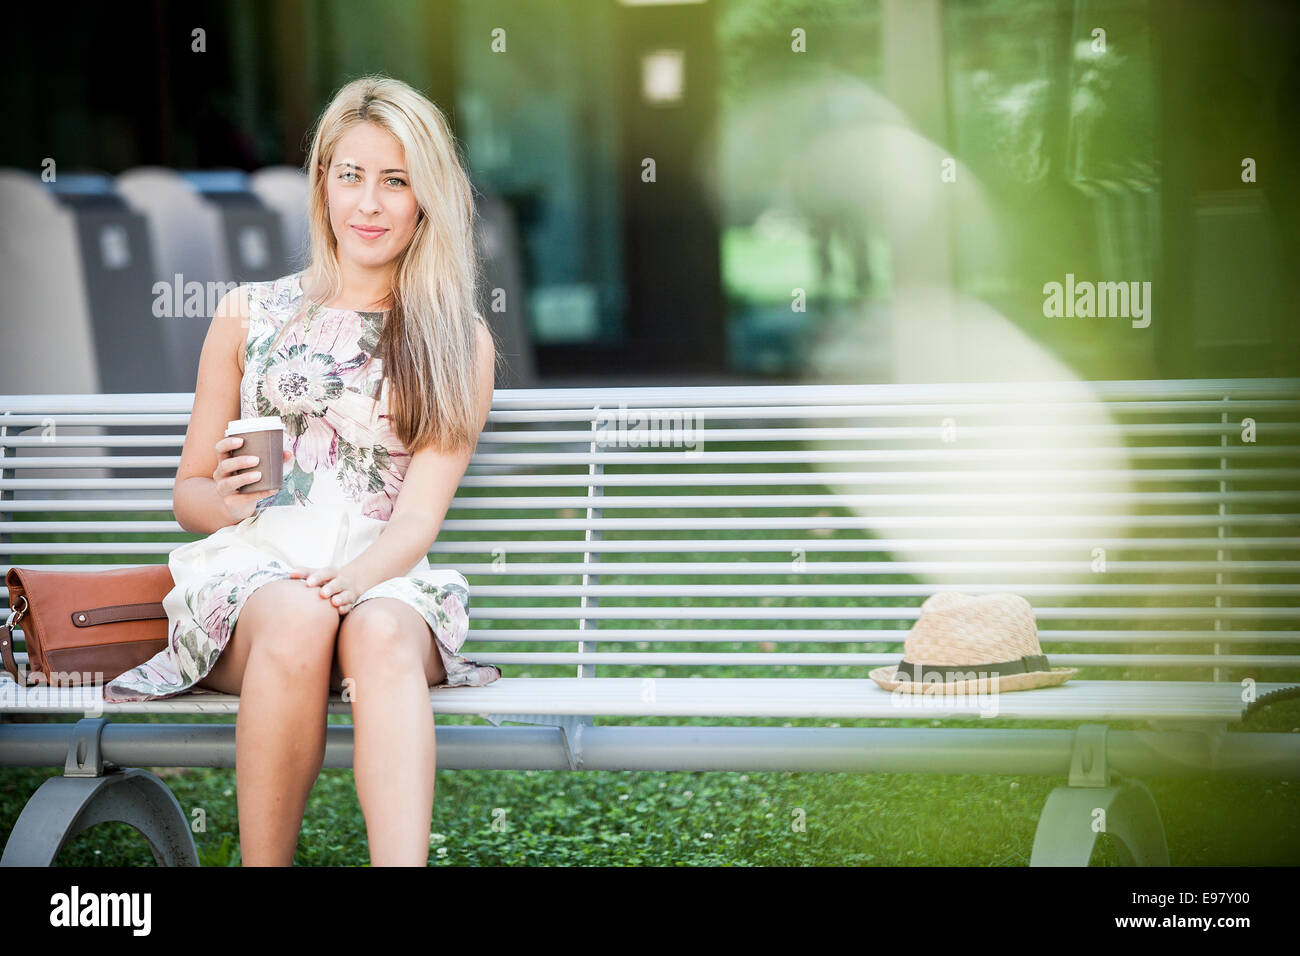 Young woman takes a break having a cup of coffee - Stock Image